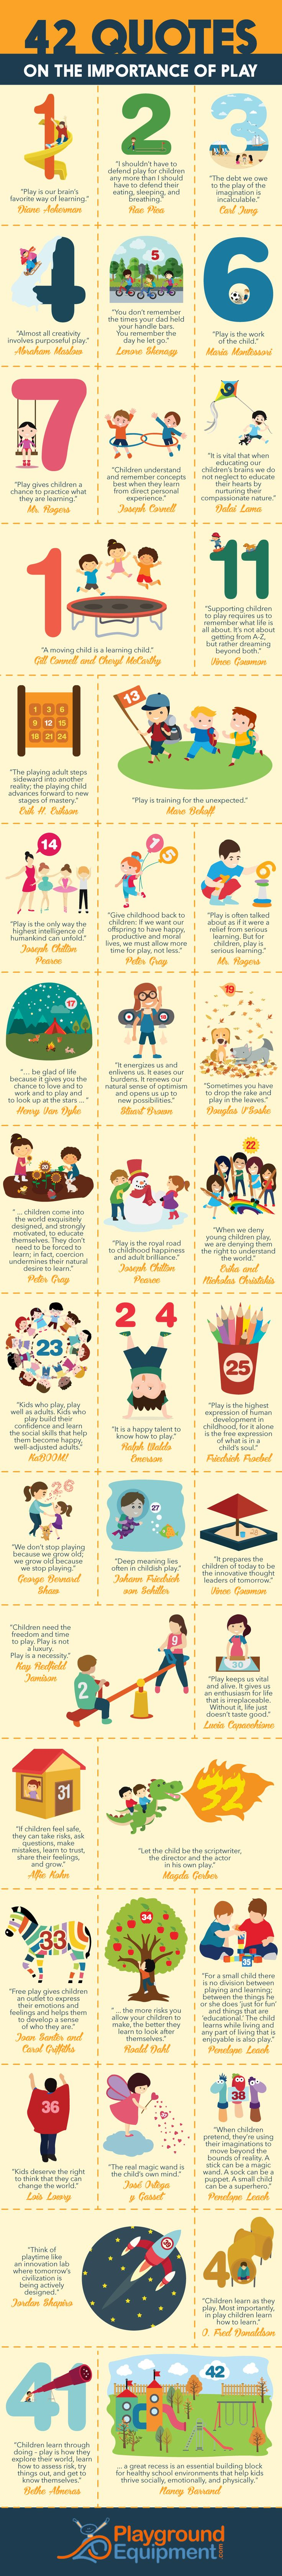 Retweeted Kimberly Hart (@KimberlyEHart): 42 quotes on why #playmatters from scientists, educators, parents, authors, and more...